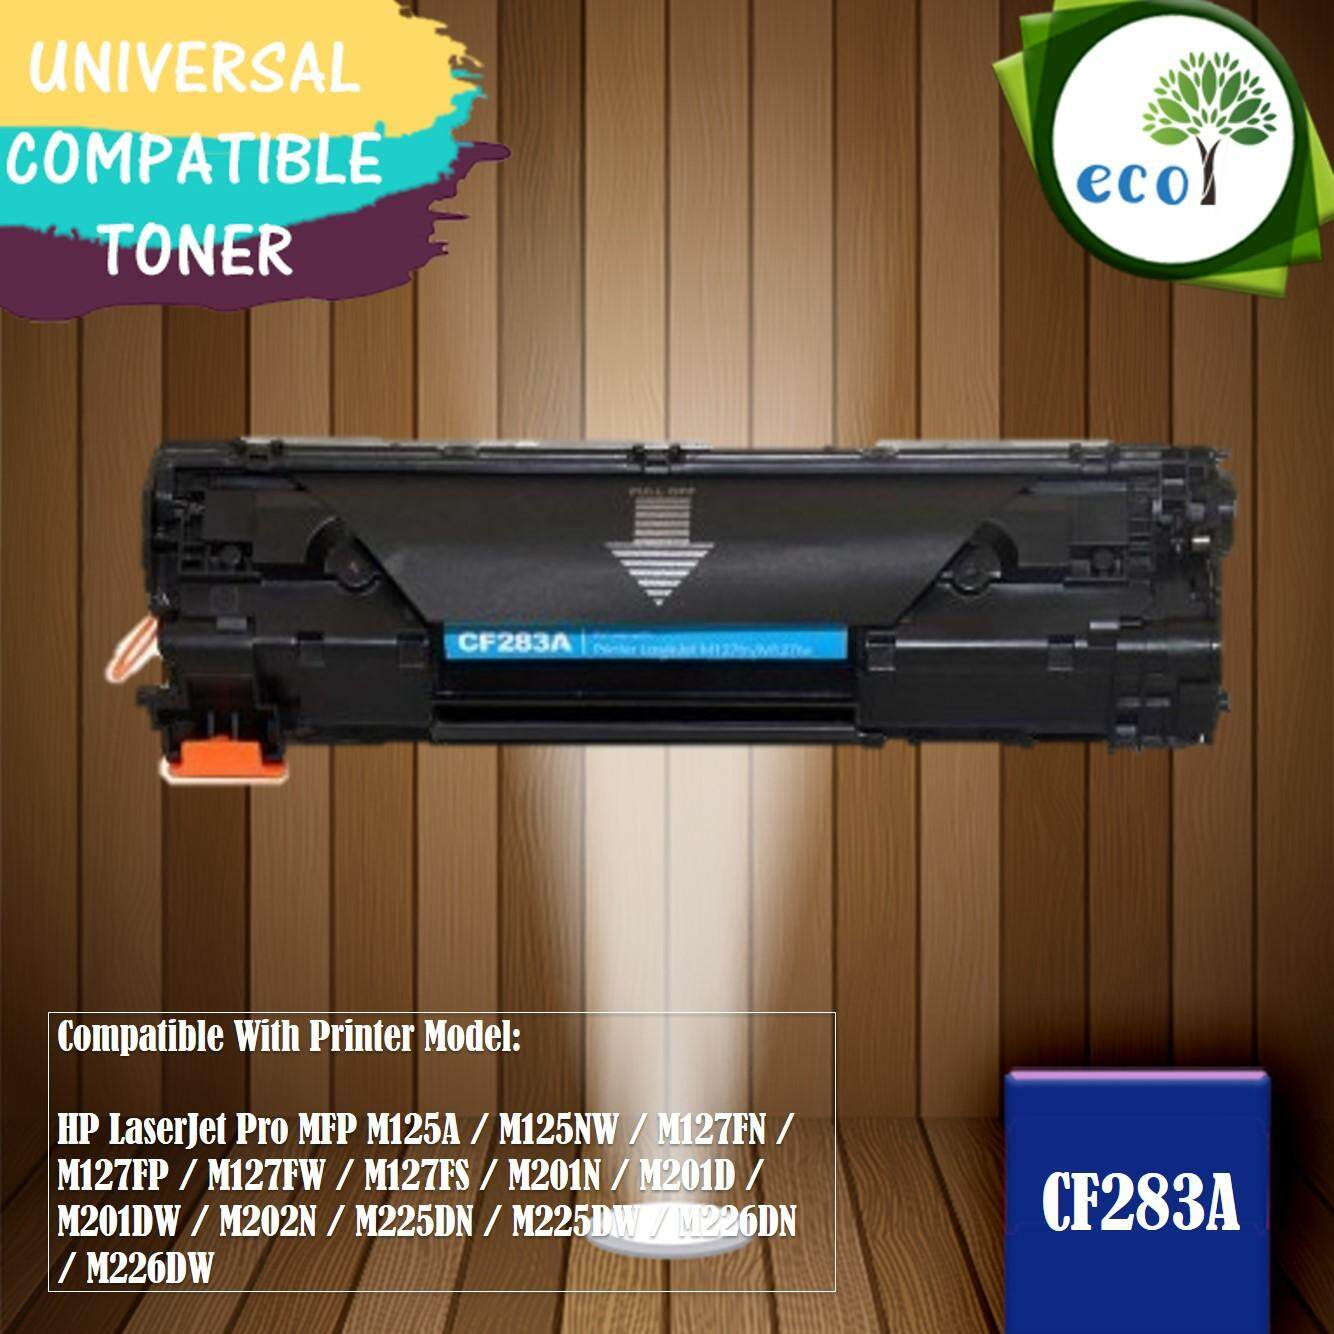 Printers & Accessories - Laser Toners for the Best Prices in